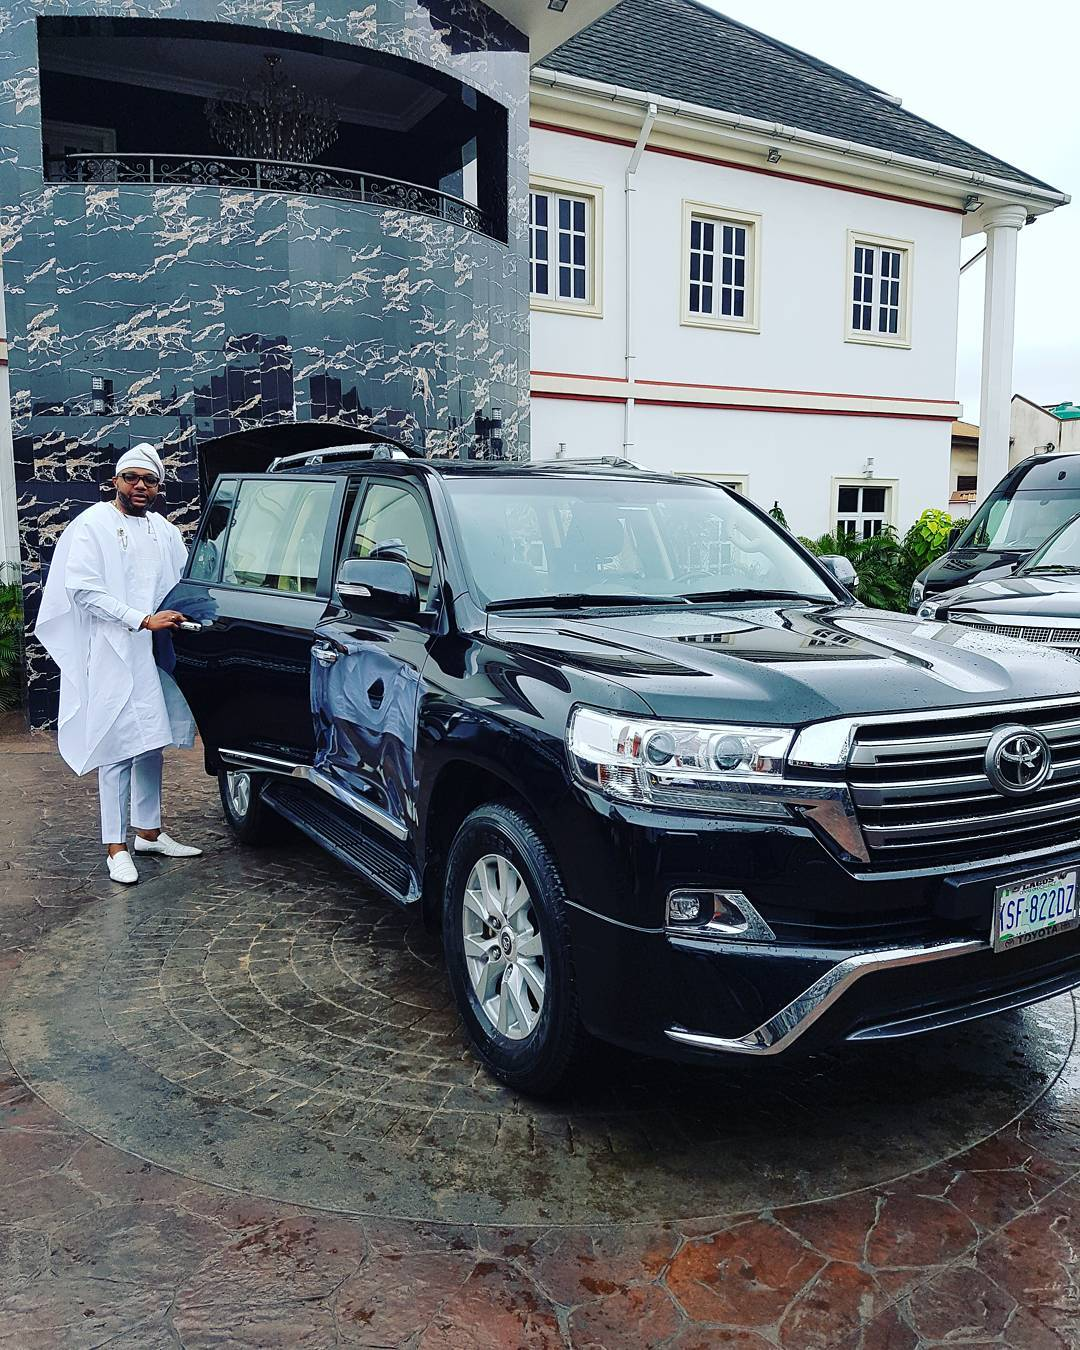 E Money Photos Of His Fleet Of Cars You Won T See Anywhere Else